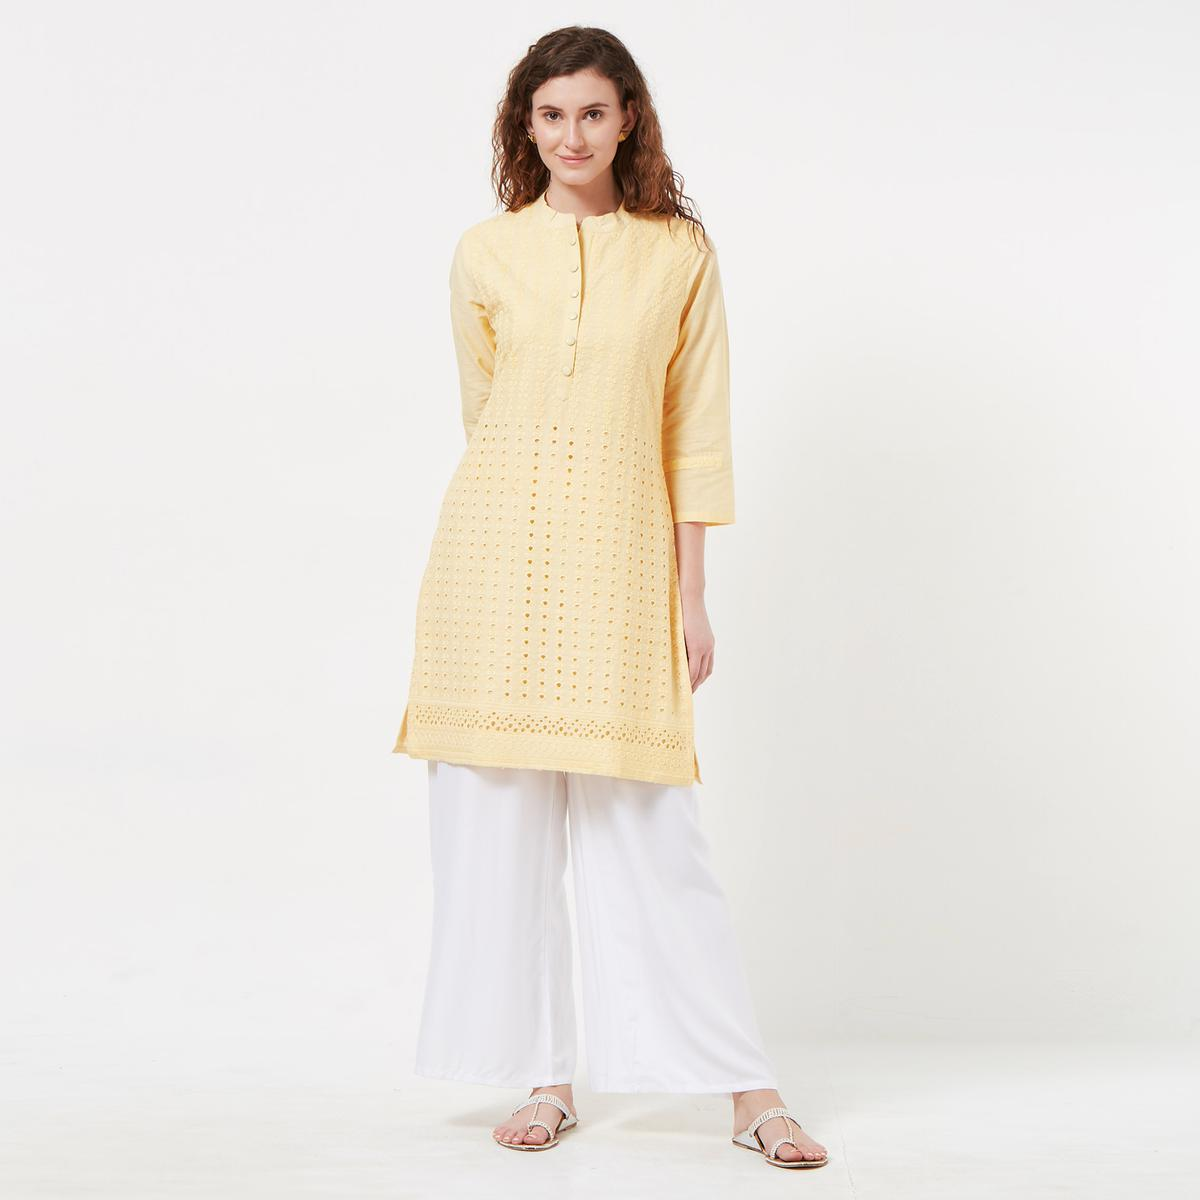 Desirable Light Yellow Colored Casual Wear Lucknowi Chikankari Cotton Kurti